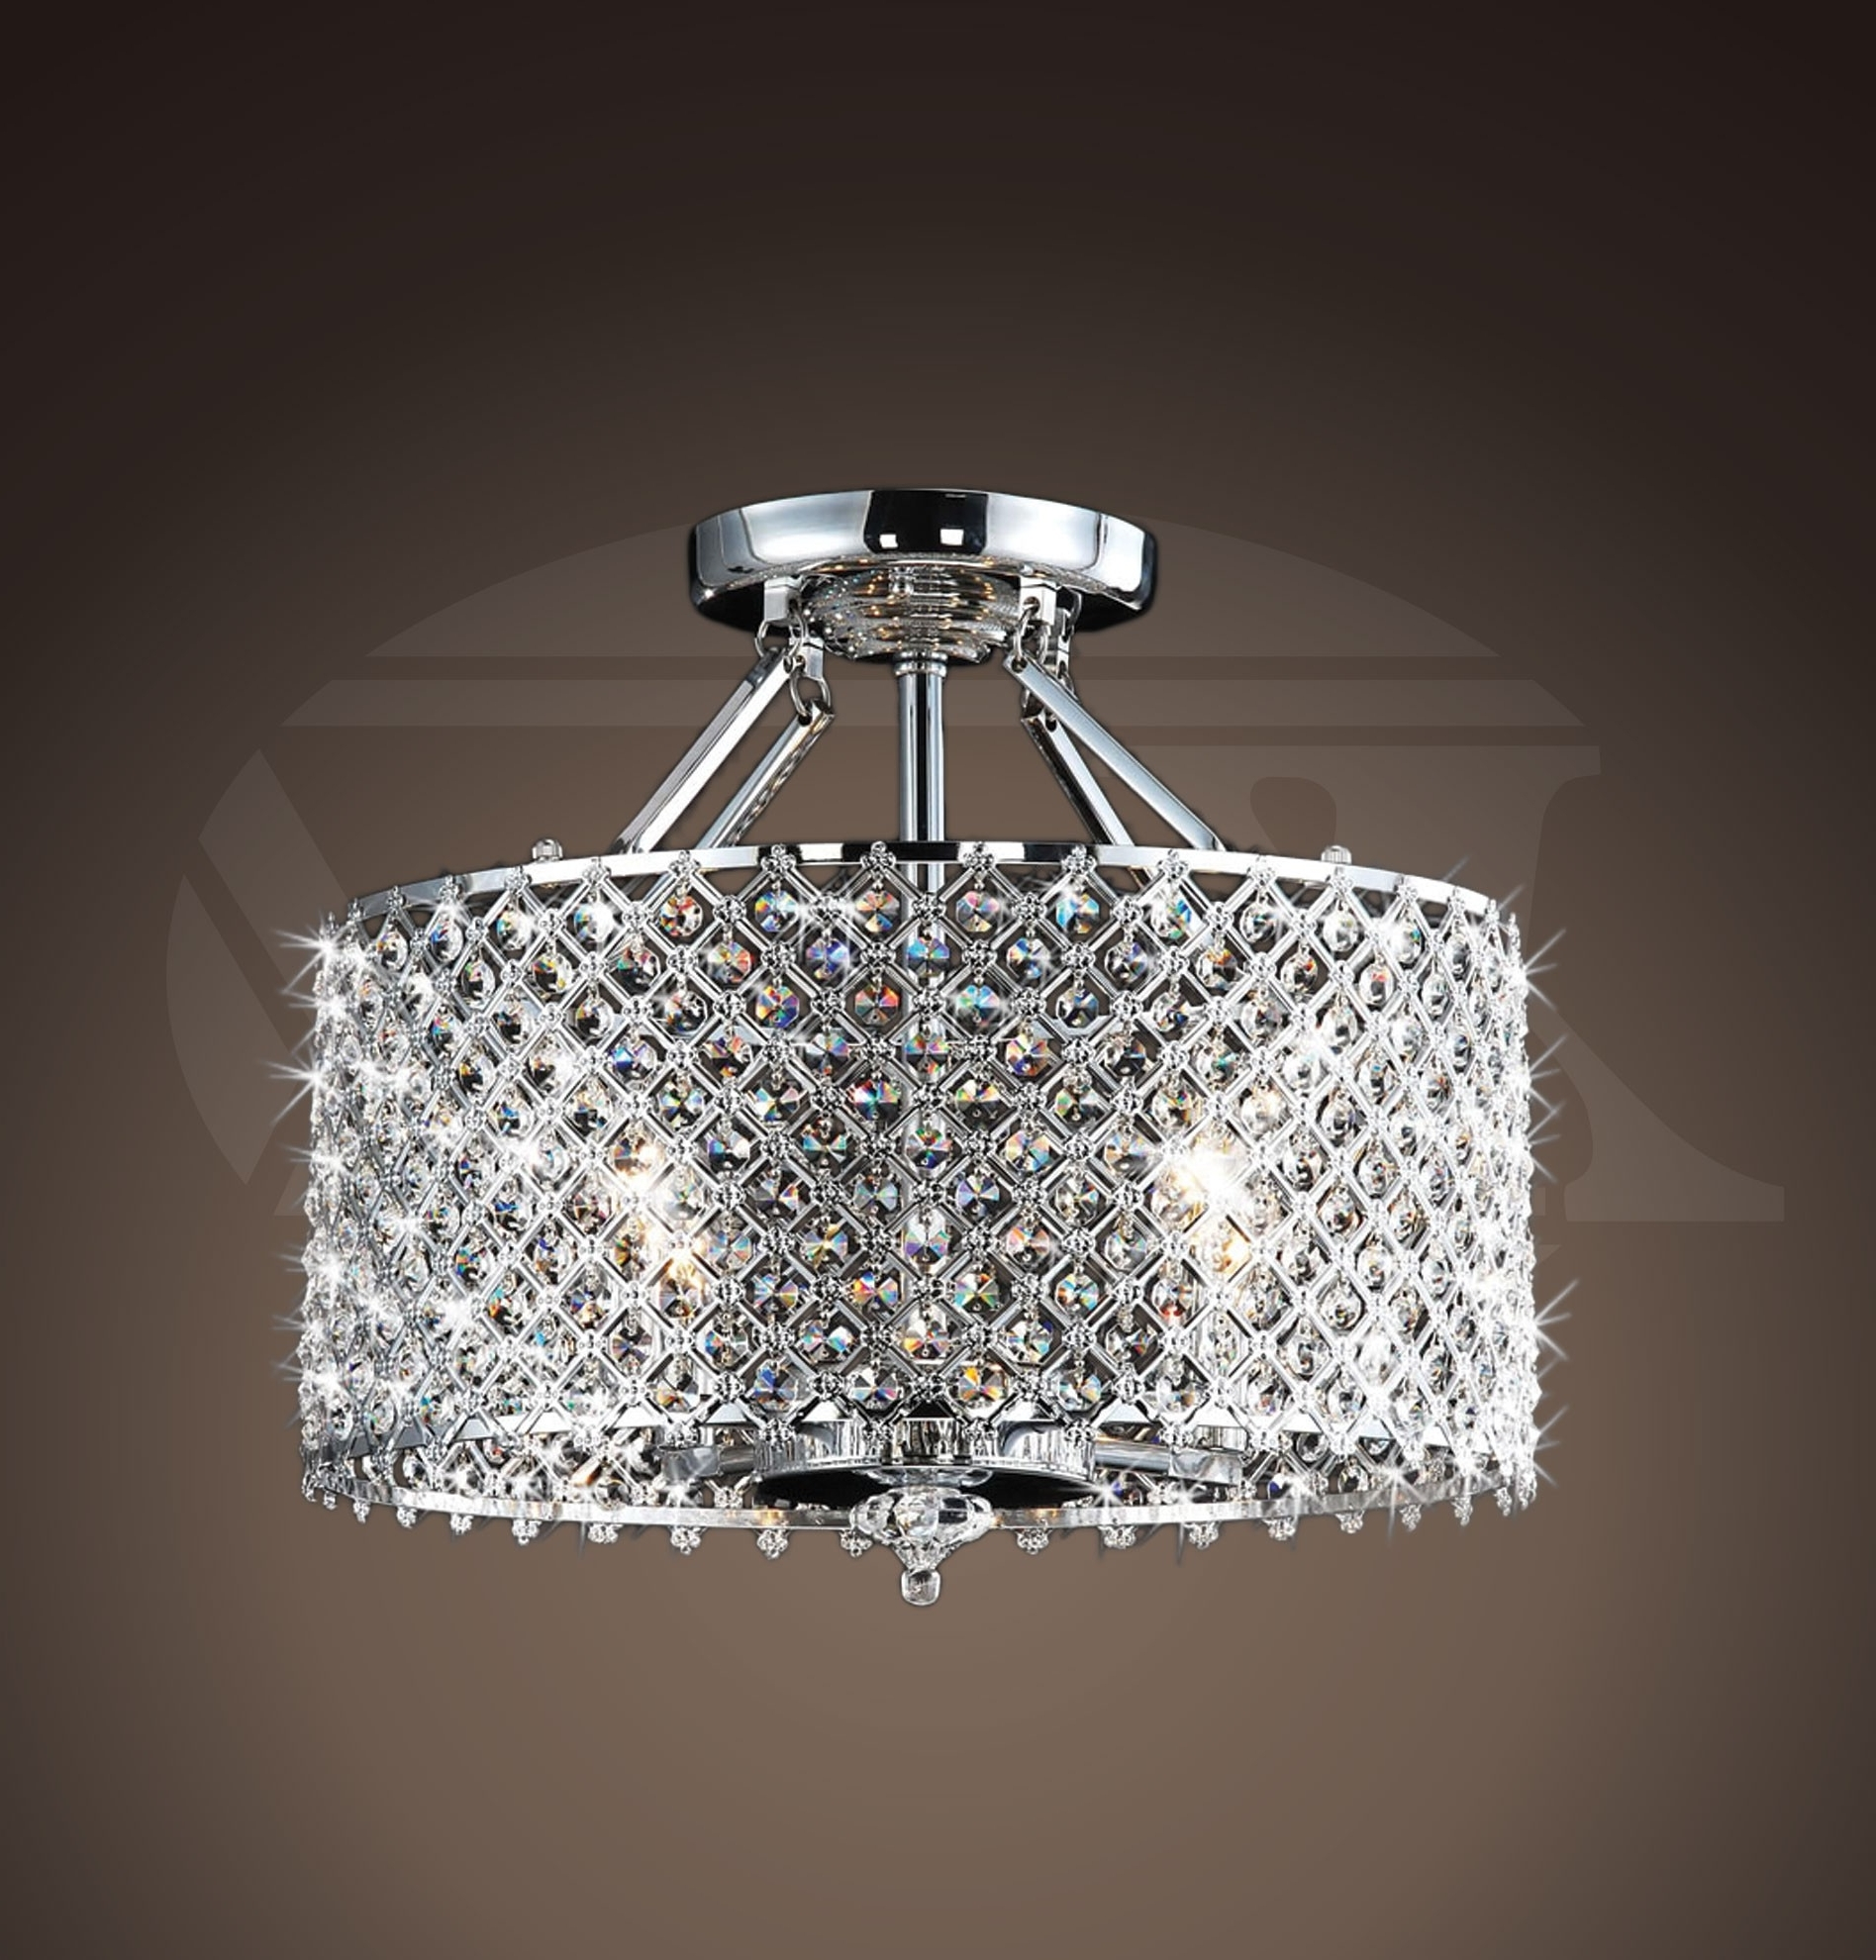 Latest Chandeliers Design : Marvelous Ceiling Chandelier Droplet Gem Inside Flush Fitting Chandelier (View 8 of 15)